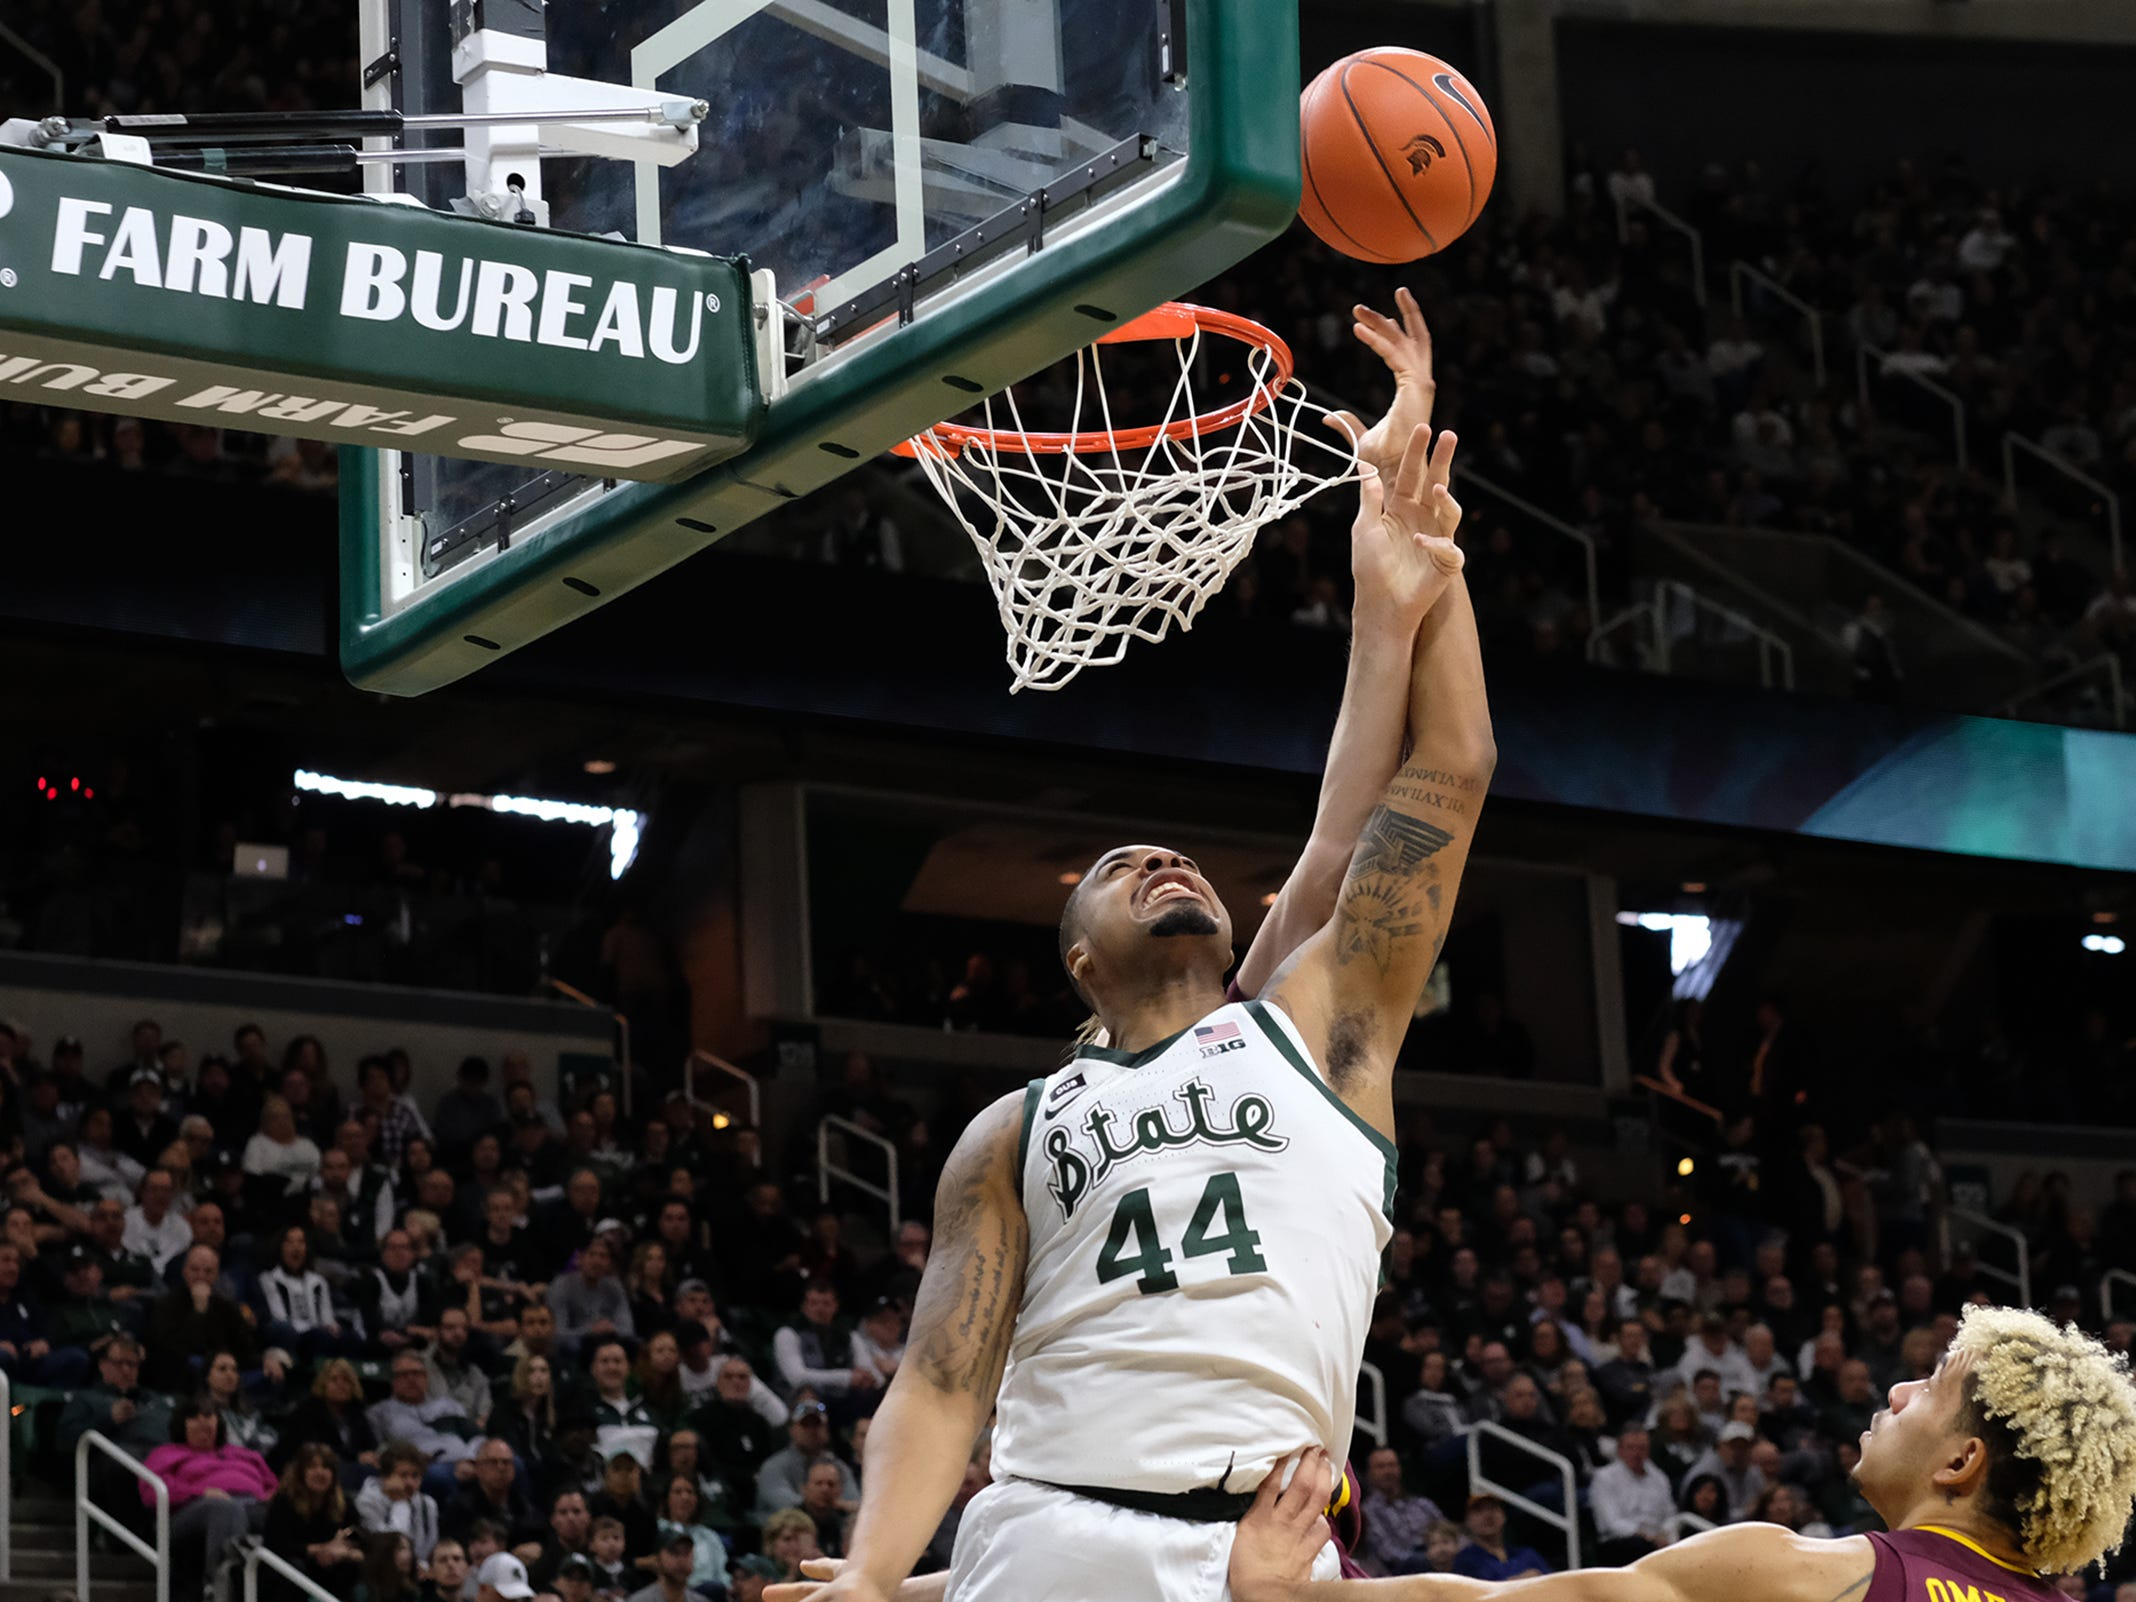 MSU's Nick Ward (44) scores under the basket against Minnesota Saturday, Feb. 9, 2019. MSU won 79-55.